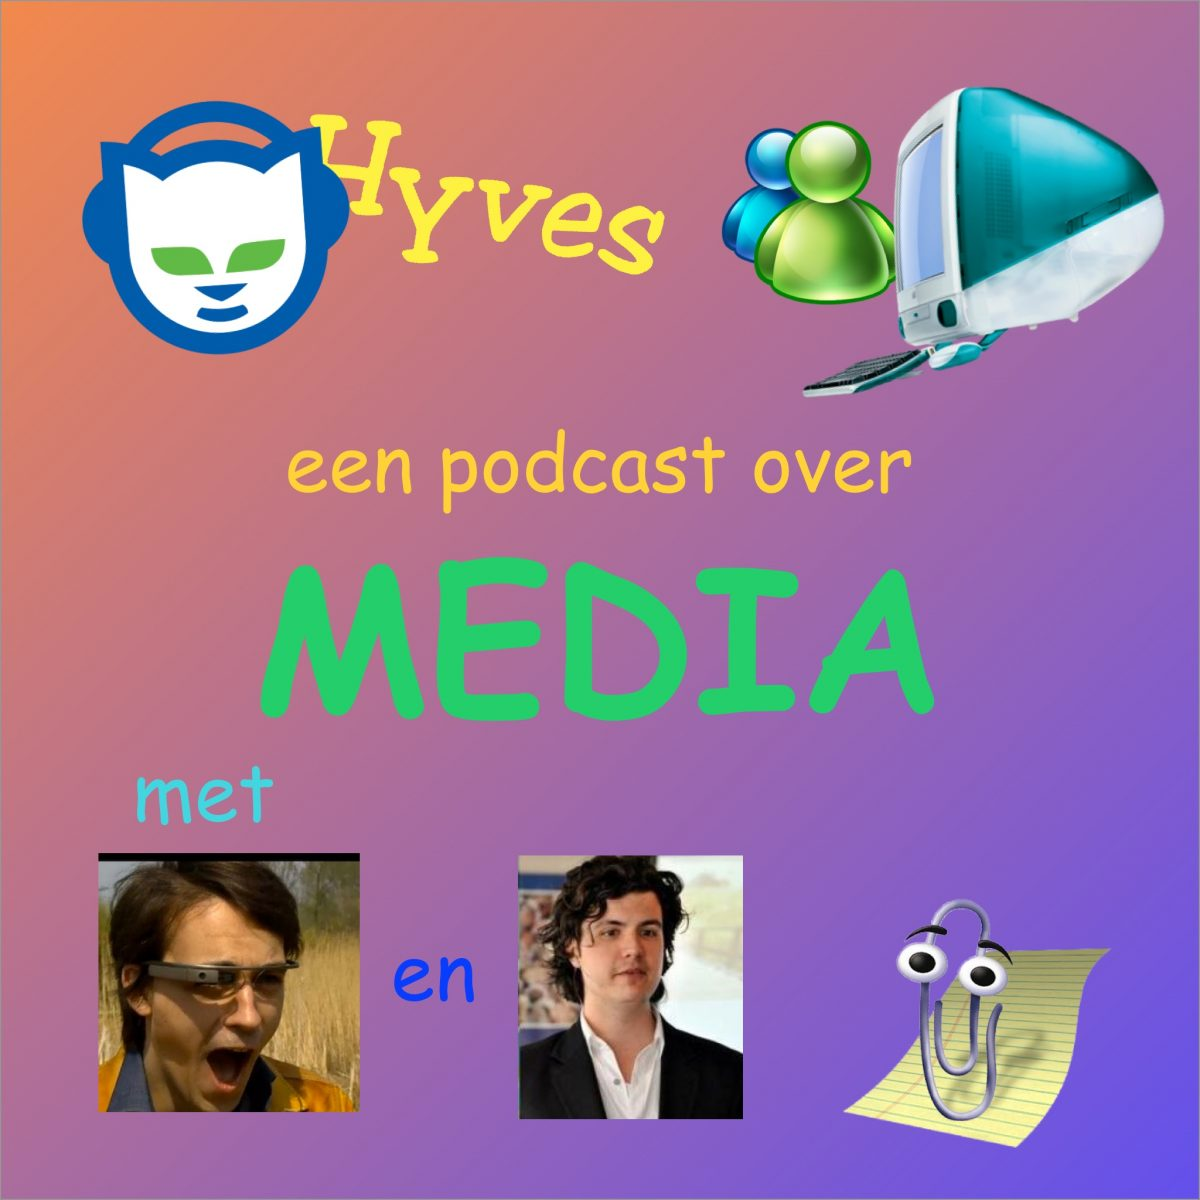 Een Podcast over Media – met Alexander Klöpping & Ernst-Jan Pfauth